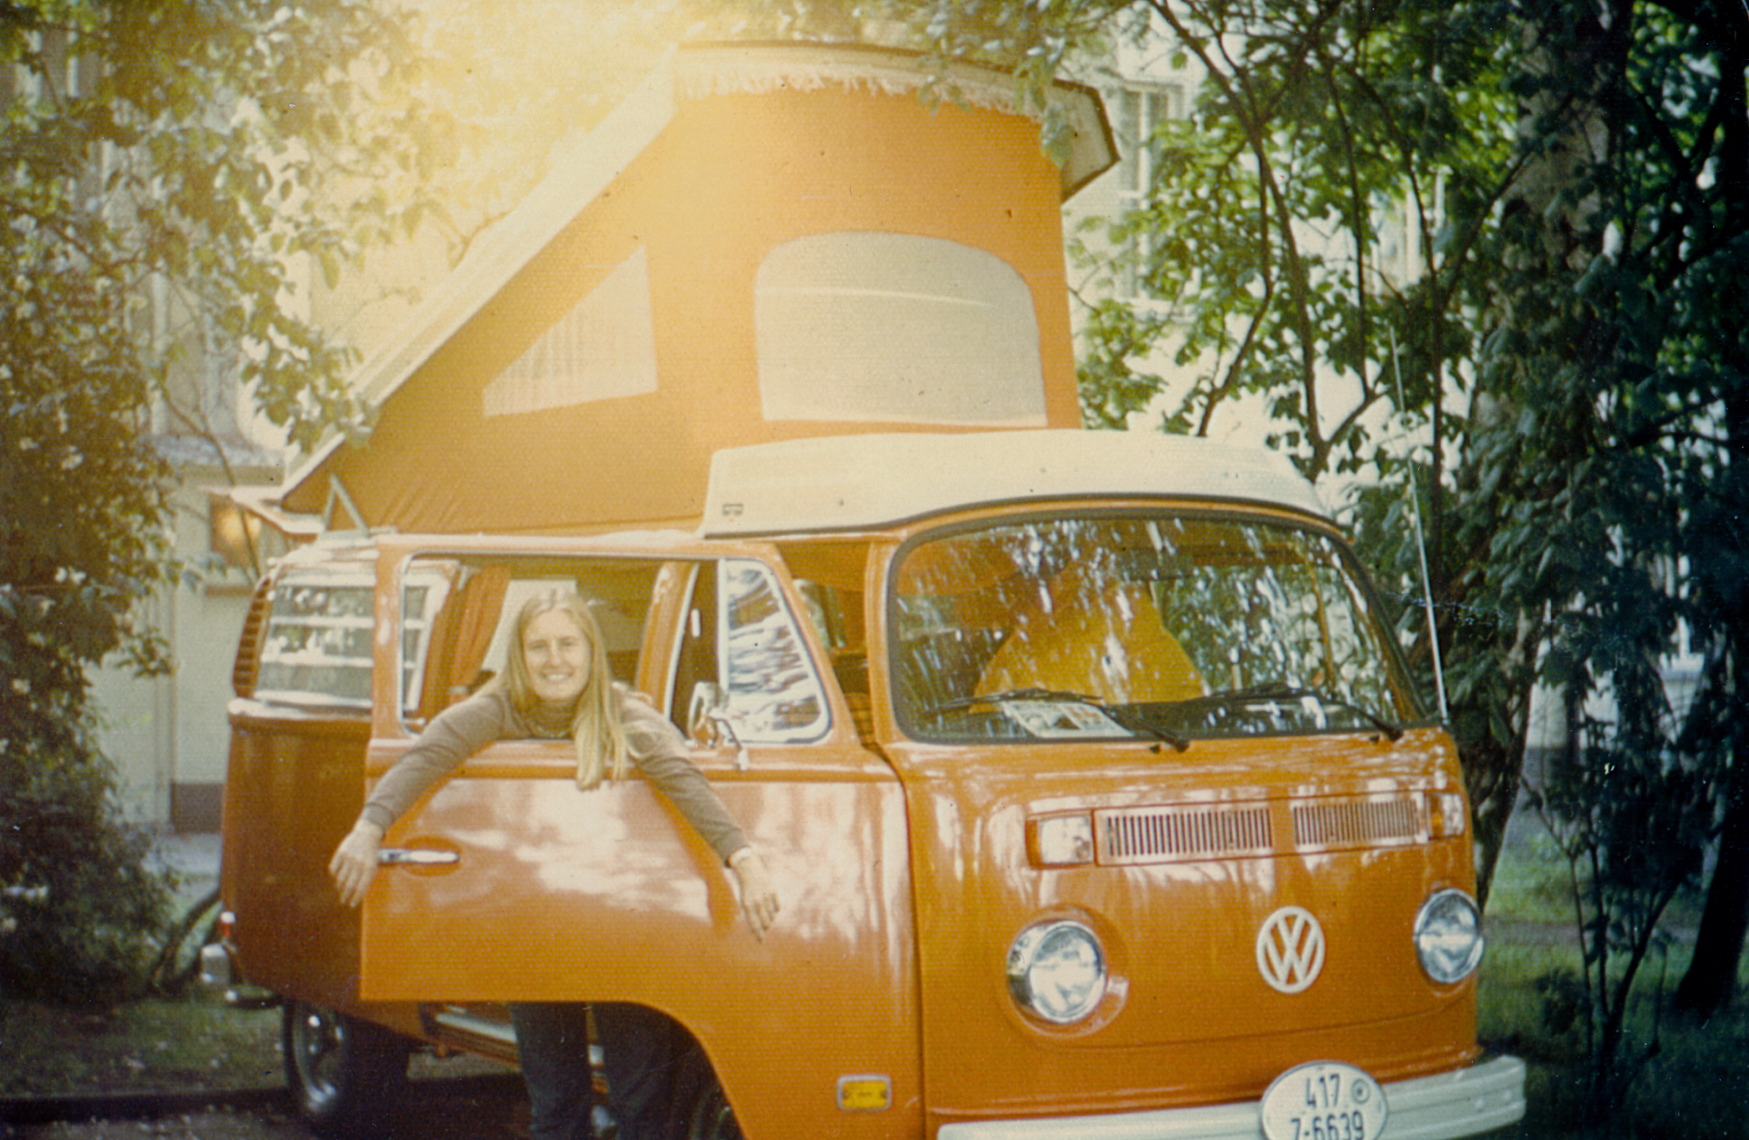 40_mom with VW van-1 copy